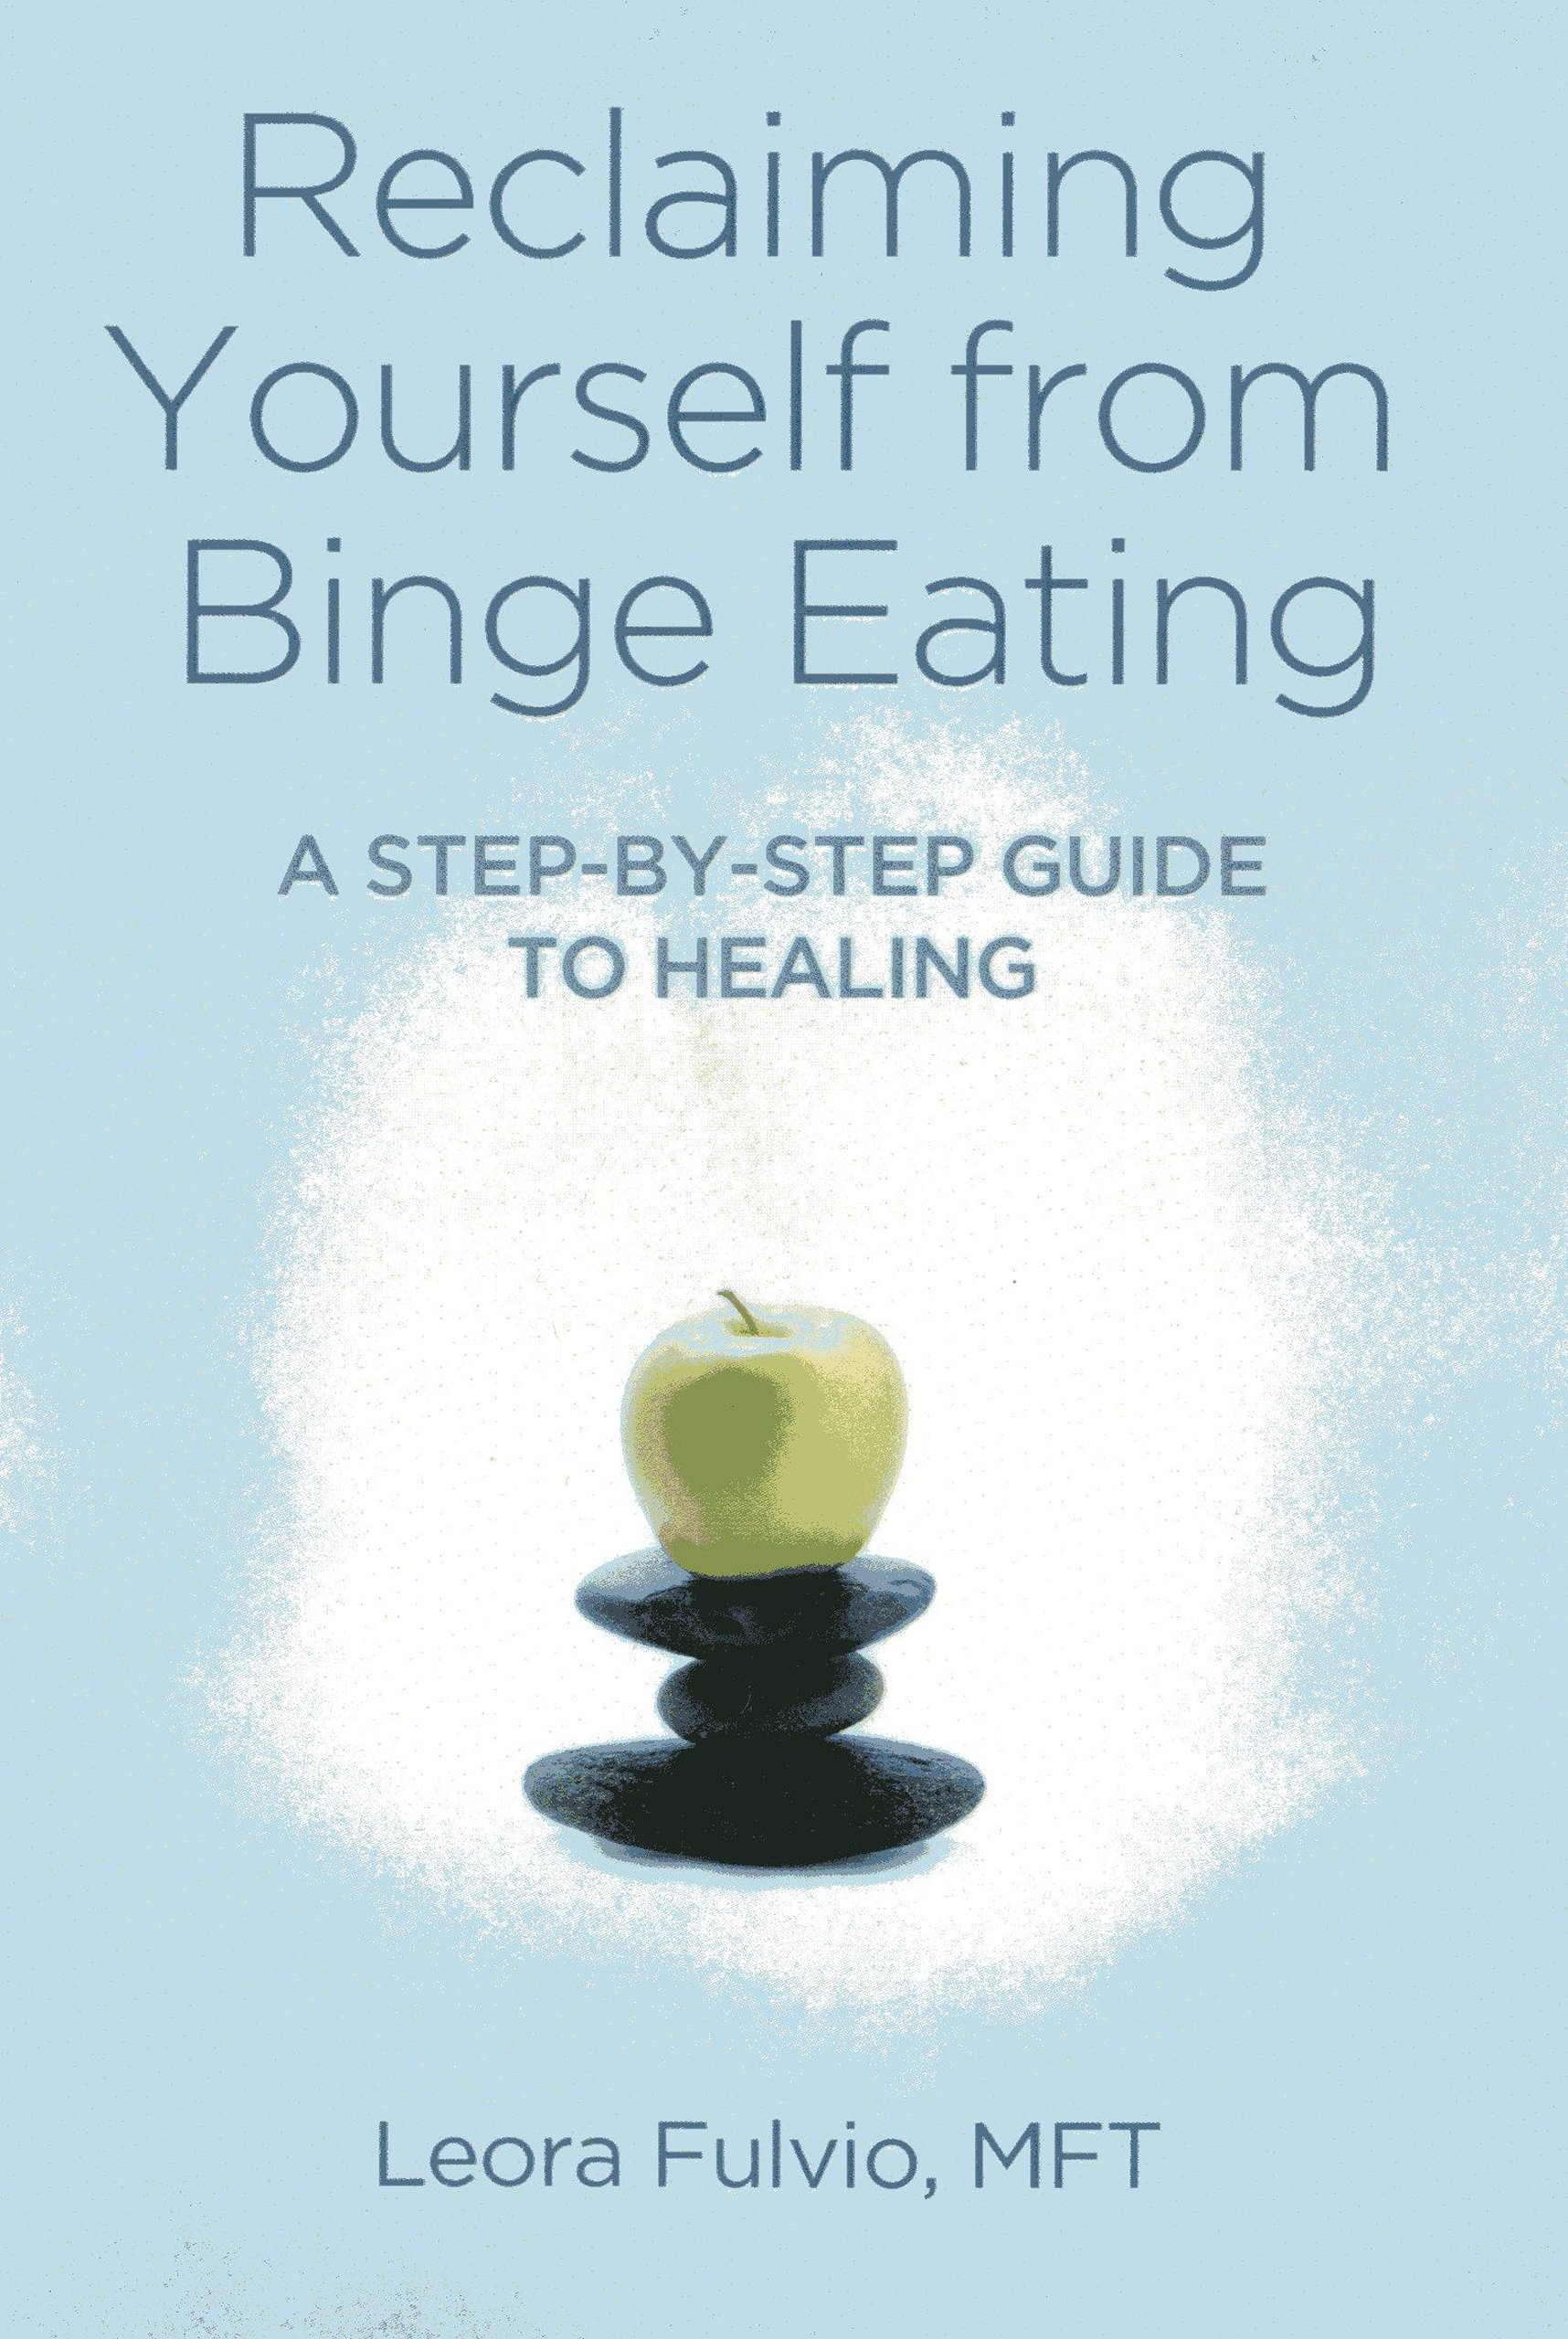 Reclaiming Yourself Binge Eating Step product image